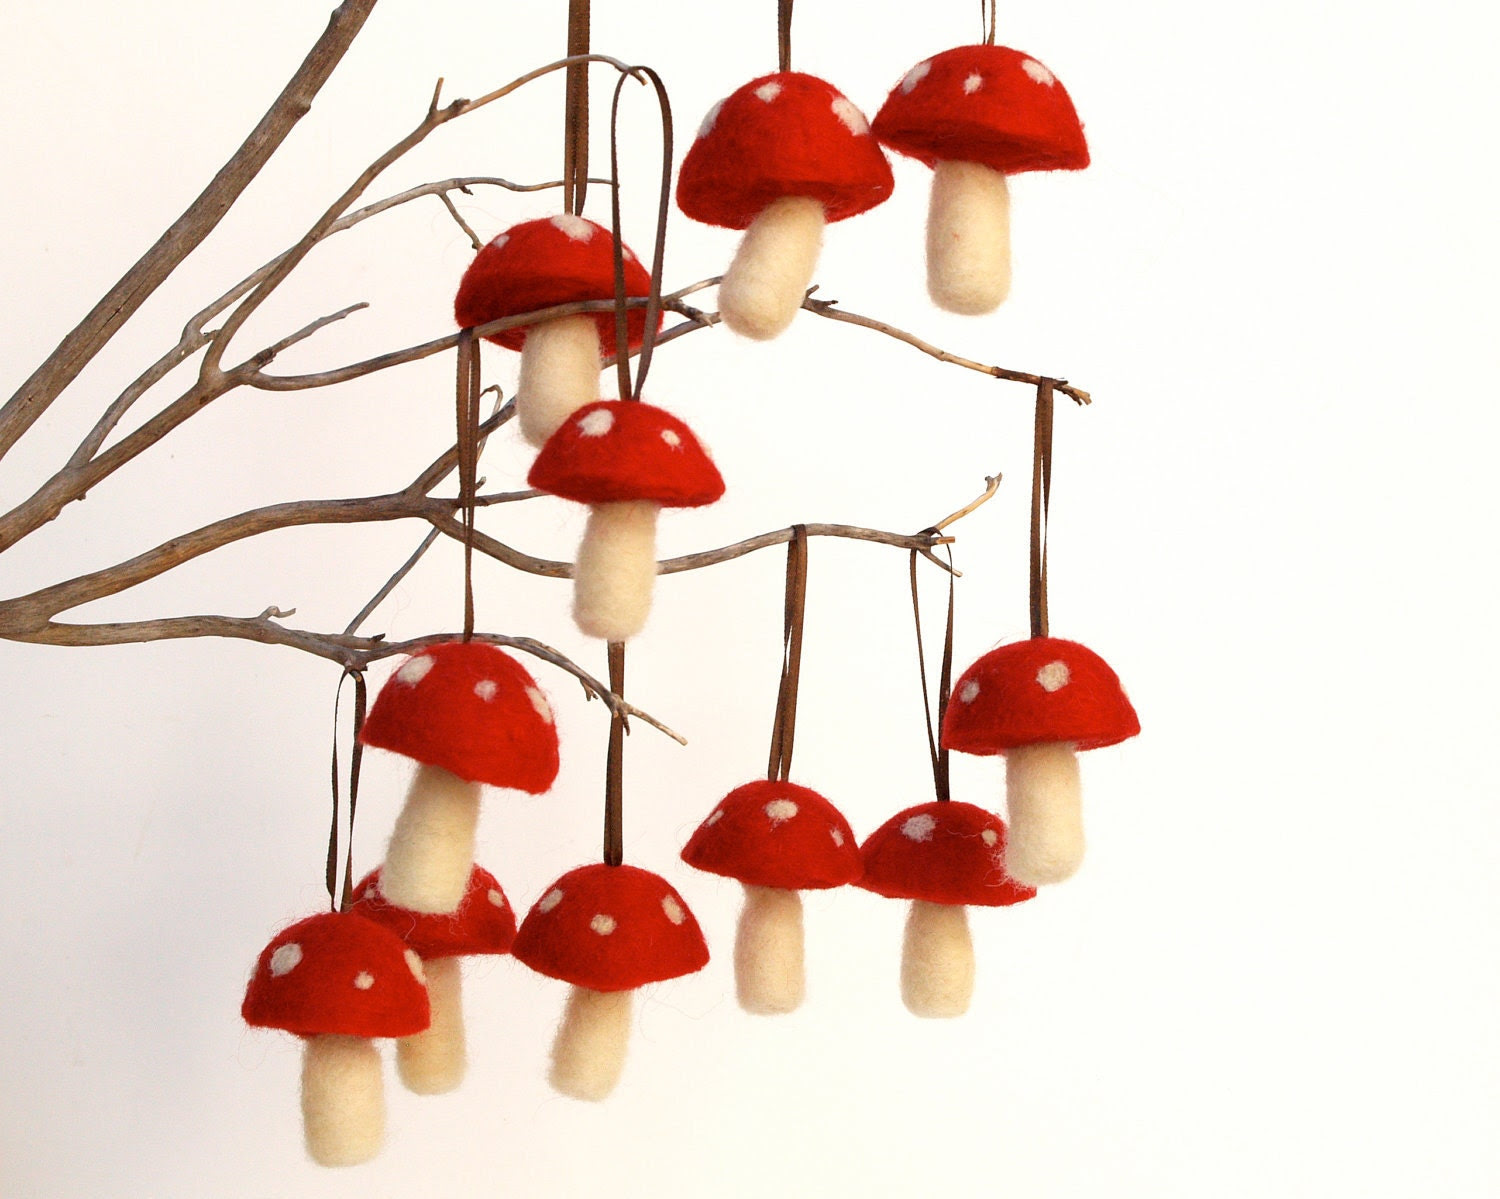 Felted Christmas Ornaments 10 red toadstool mushroom decoration woodland tree handmade nature white Hanging Aice in Wonderland